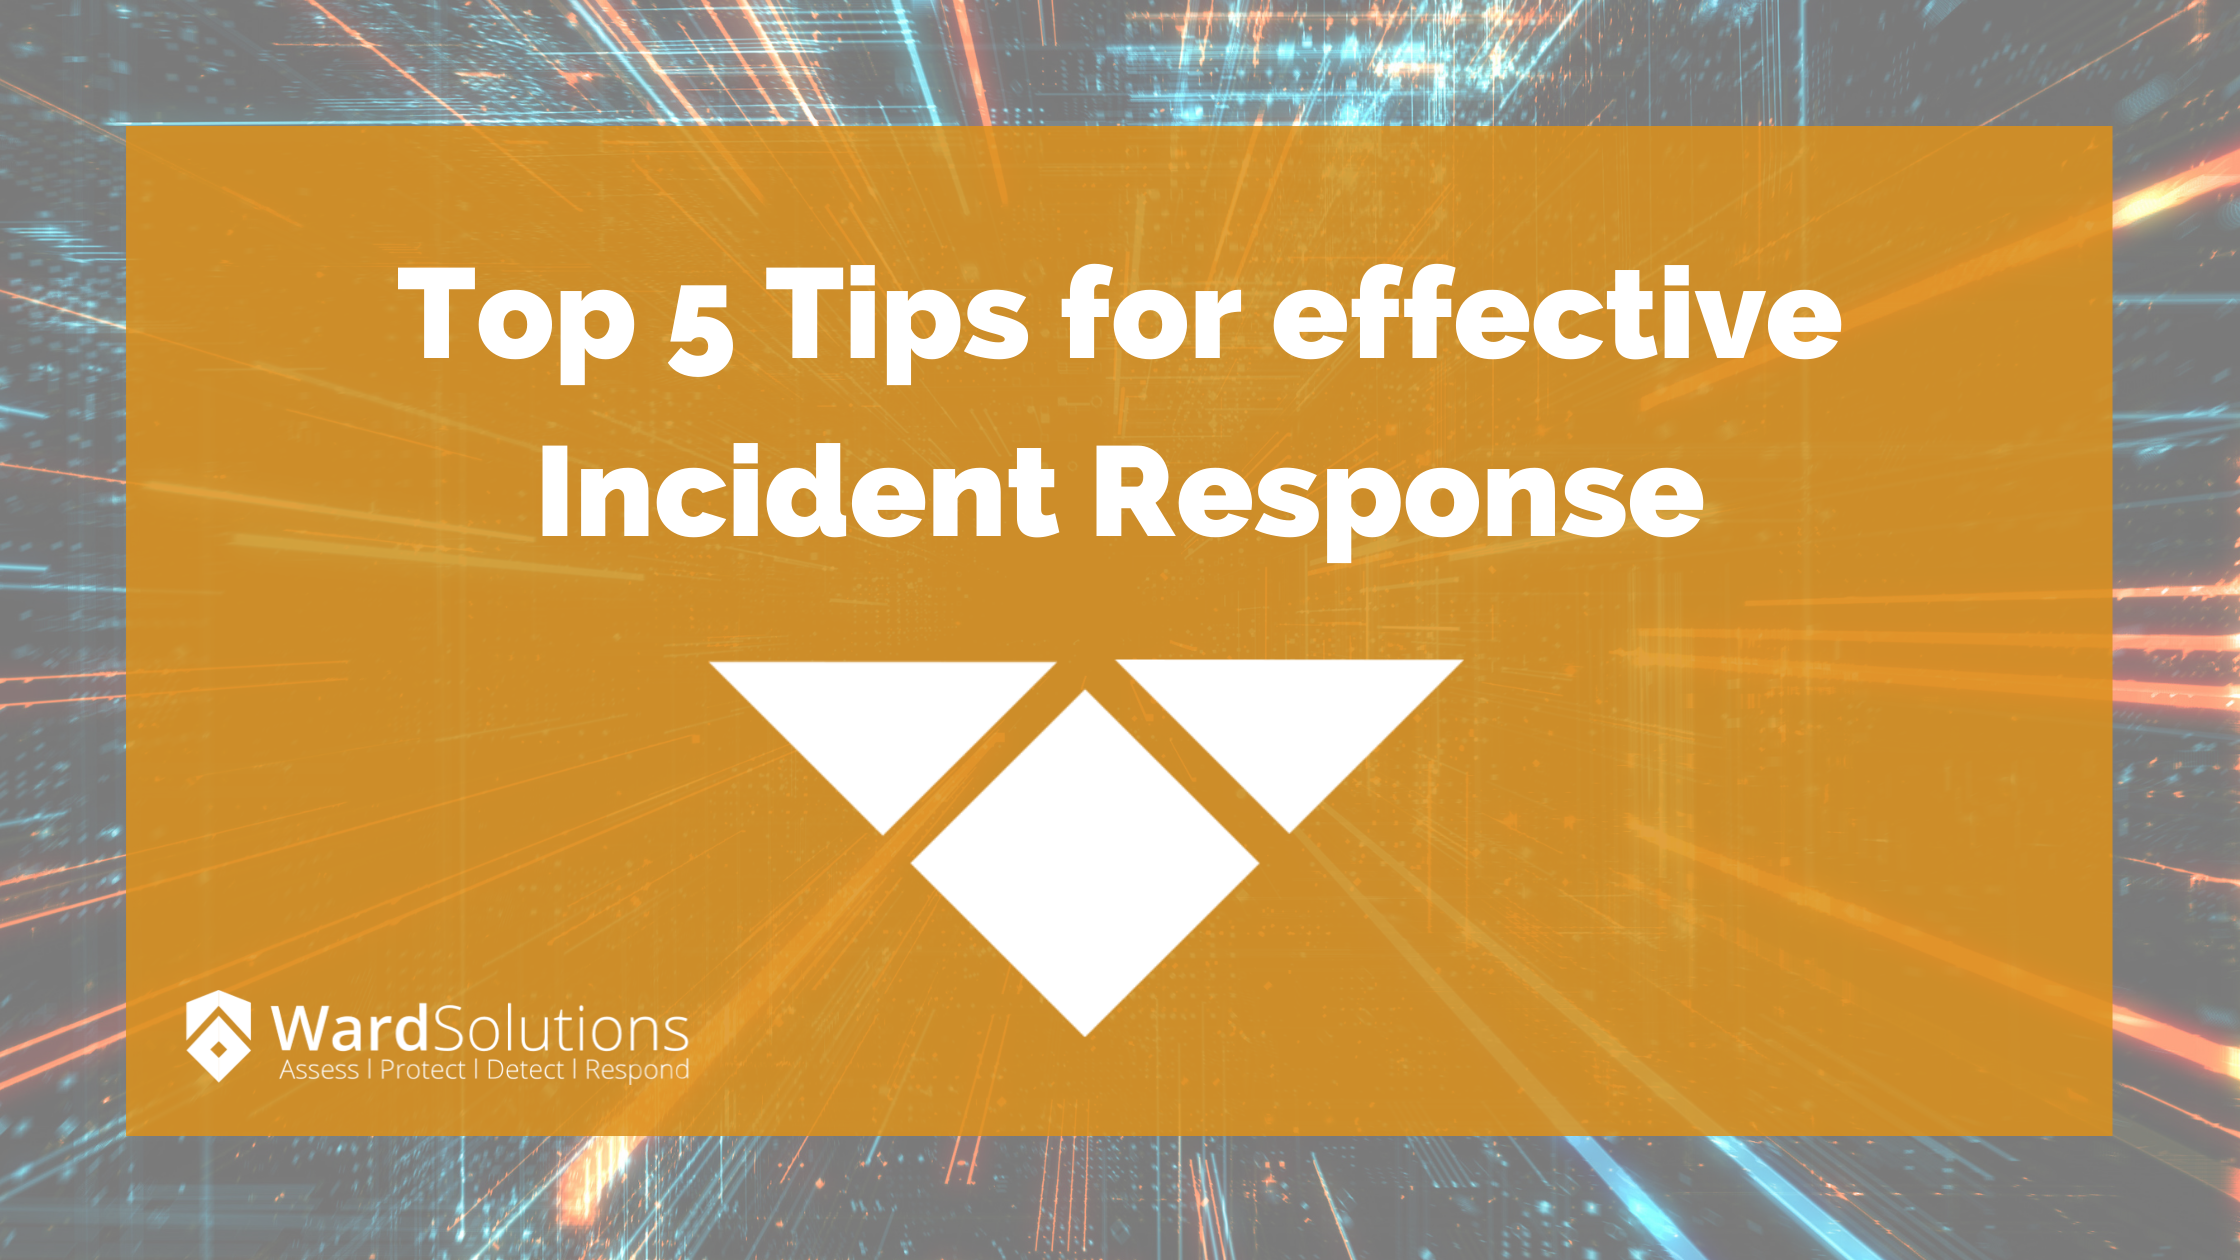 Top 5 Tips for effective Incident Response